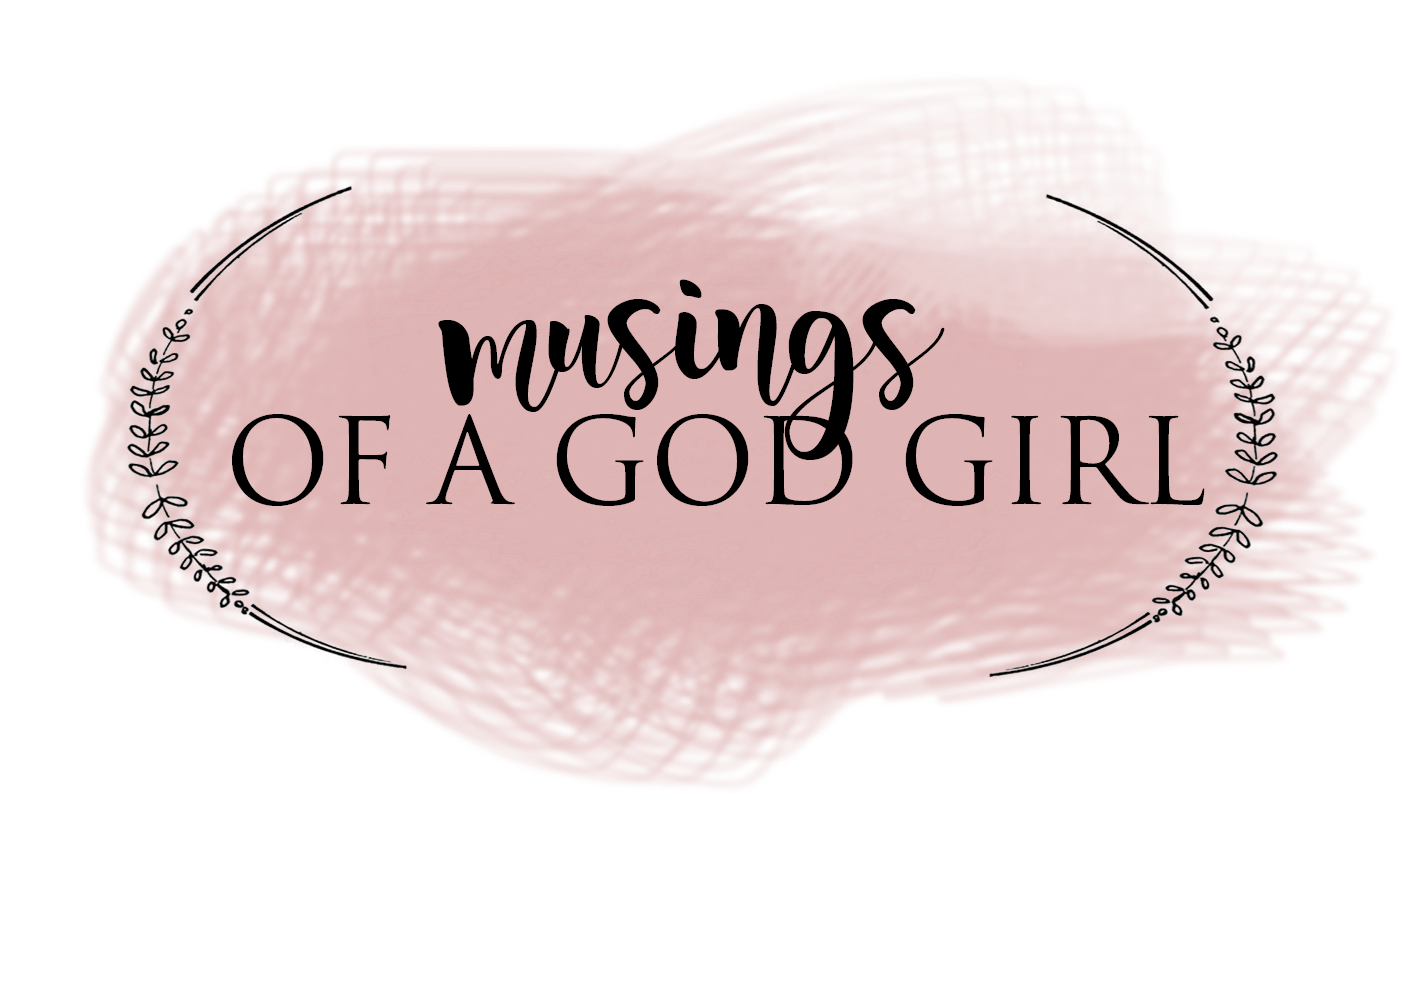 Musings of a God Girl